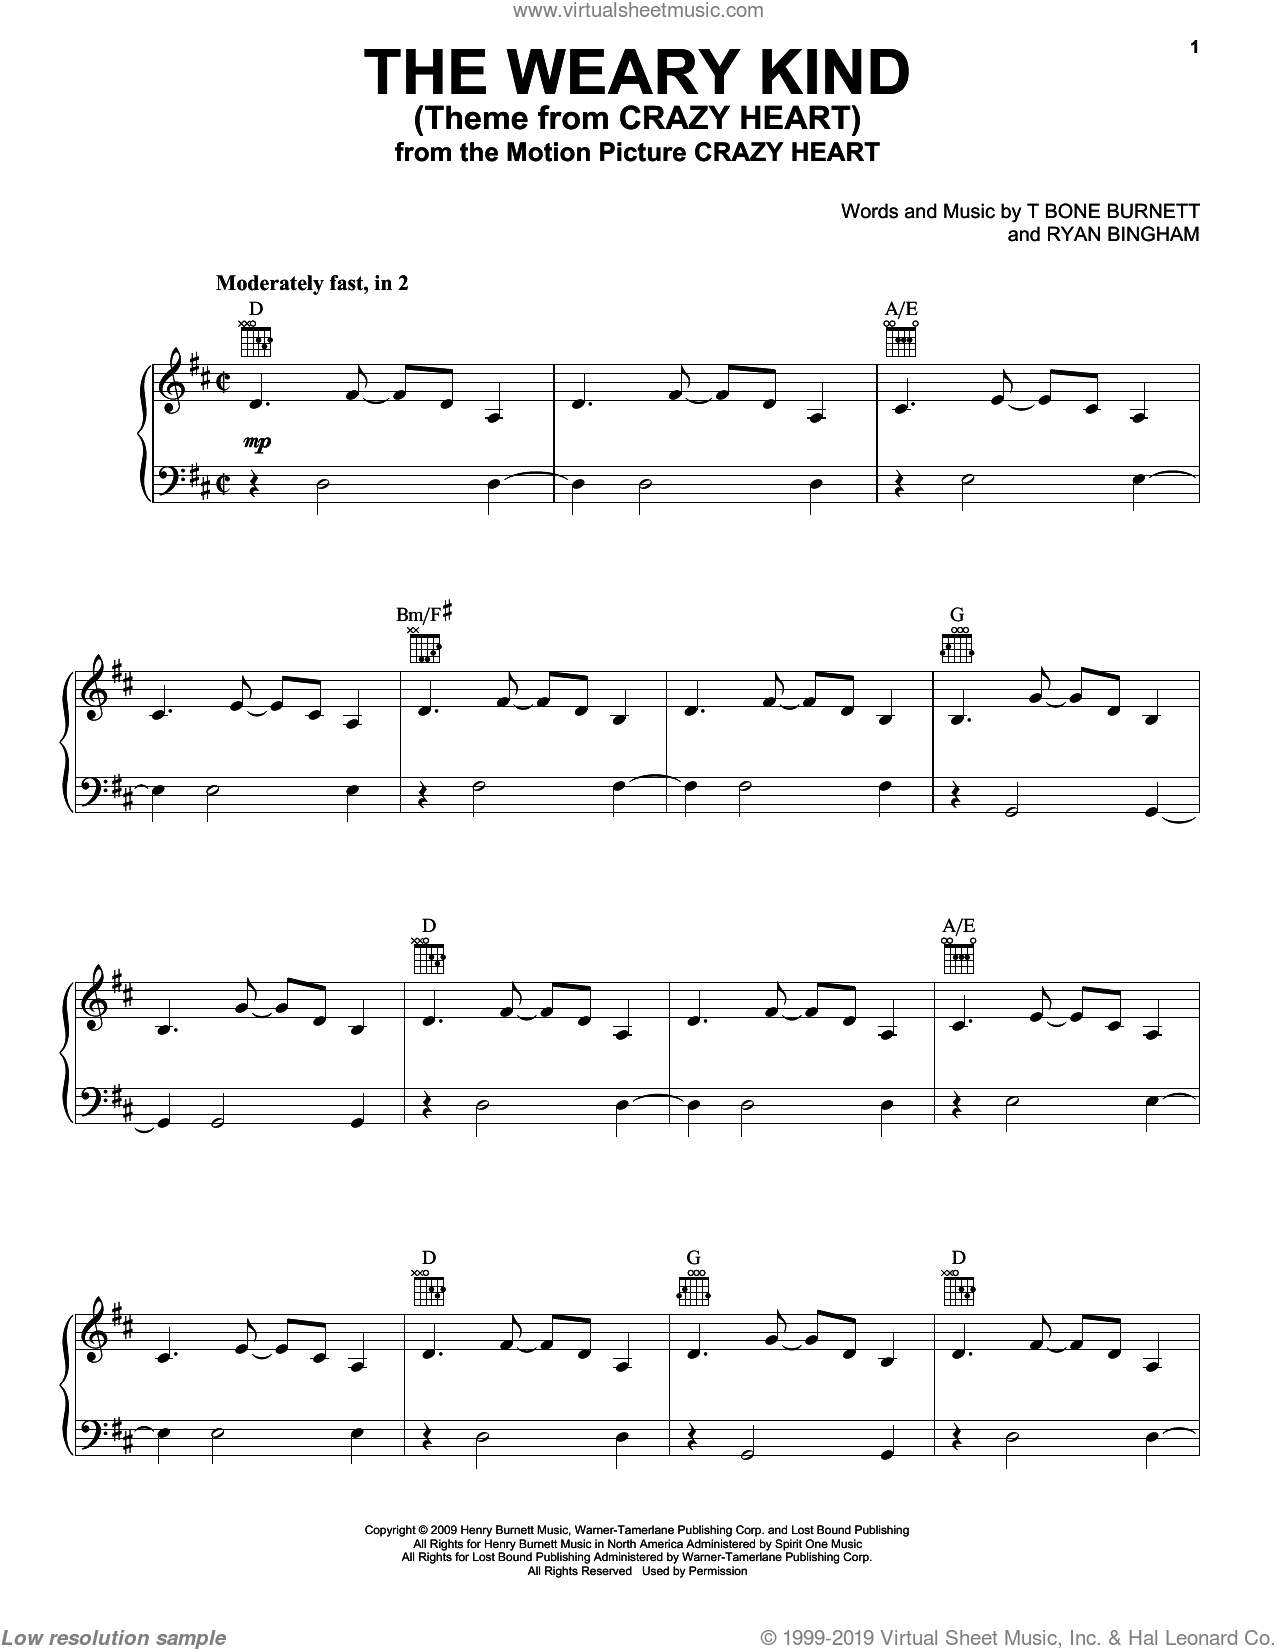 The Weary Kind (Theme From Crazy Heart) sheet music for voice, piano or guitar by Ryan Bingham. Score Image Preview.